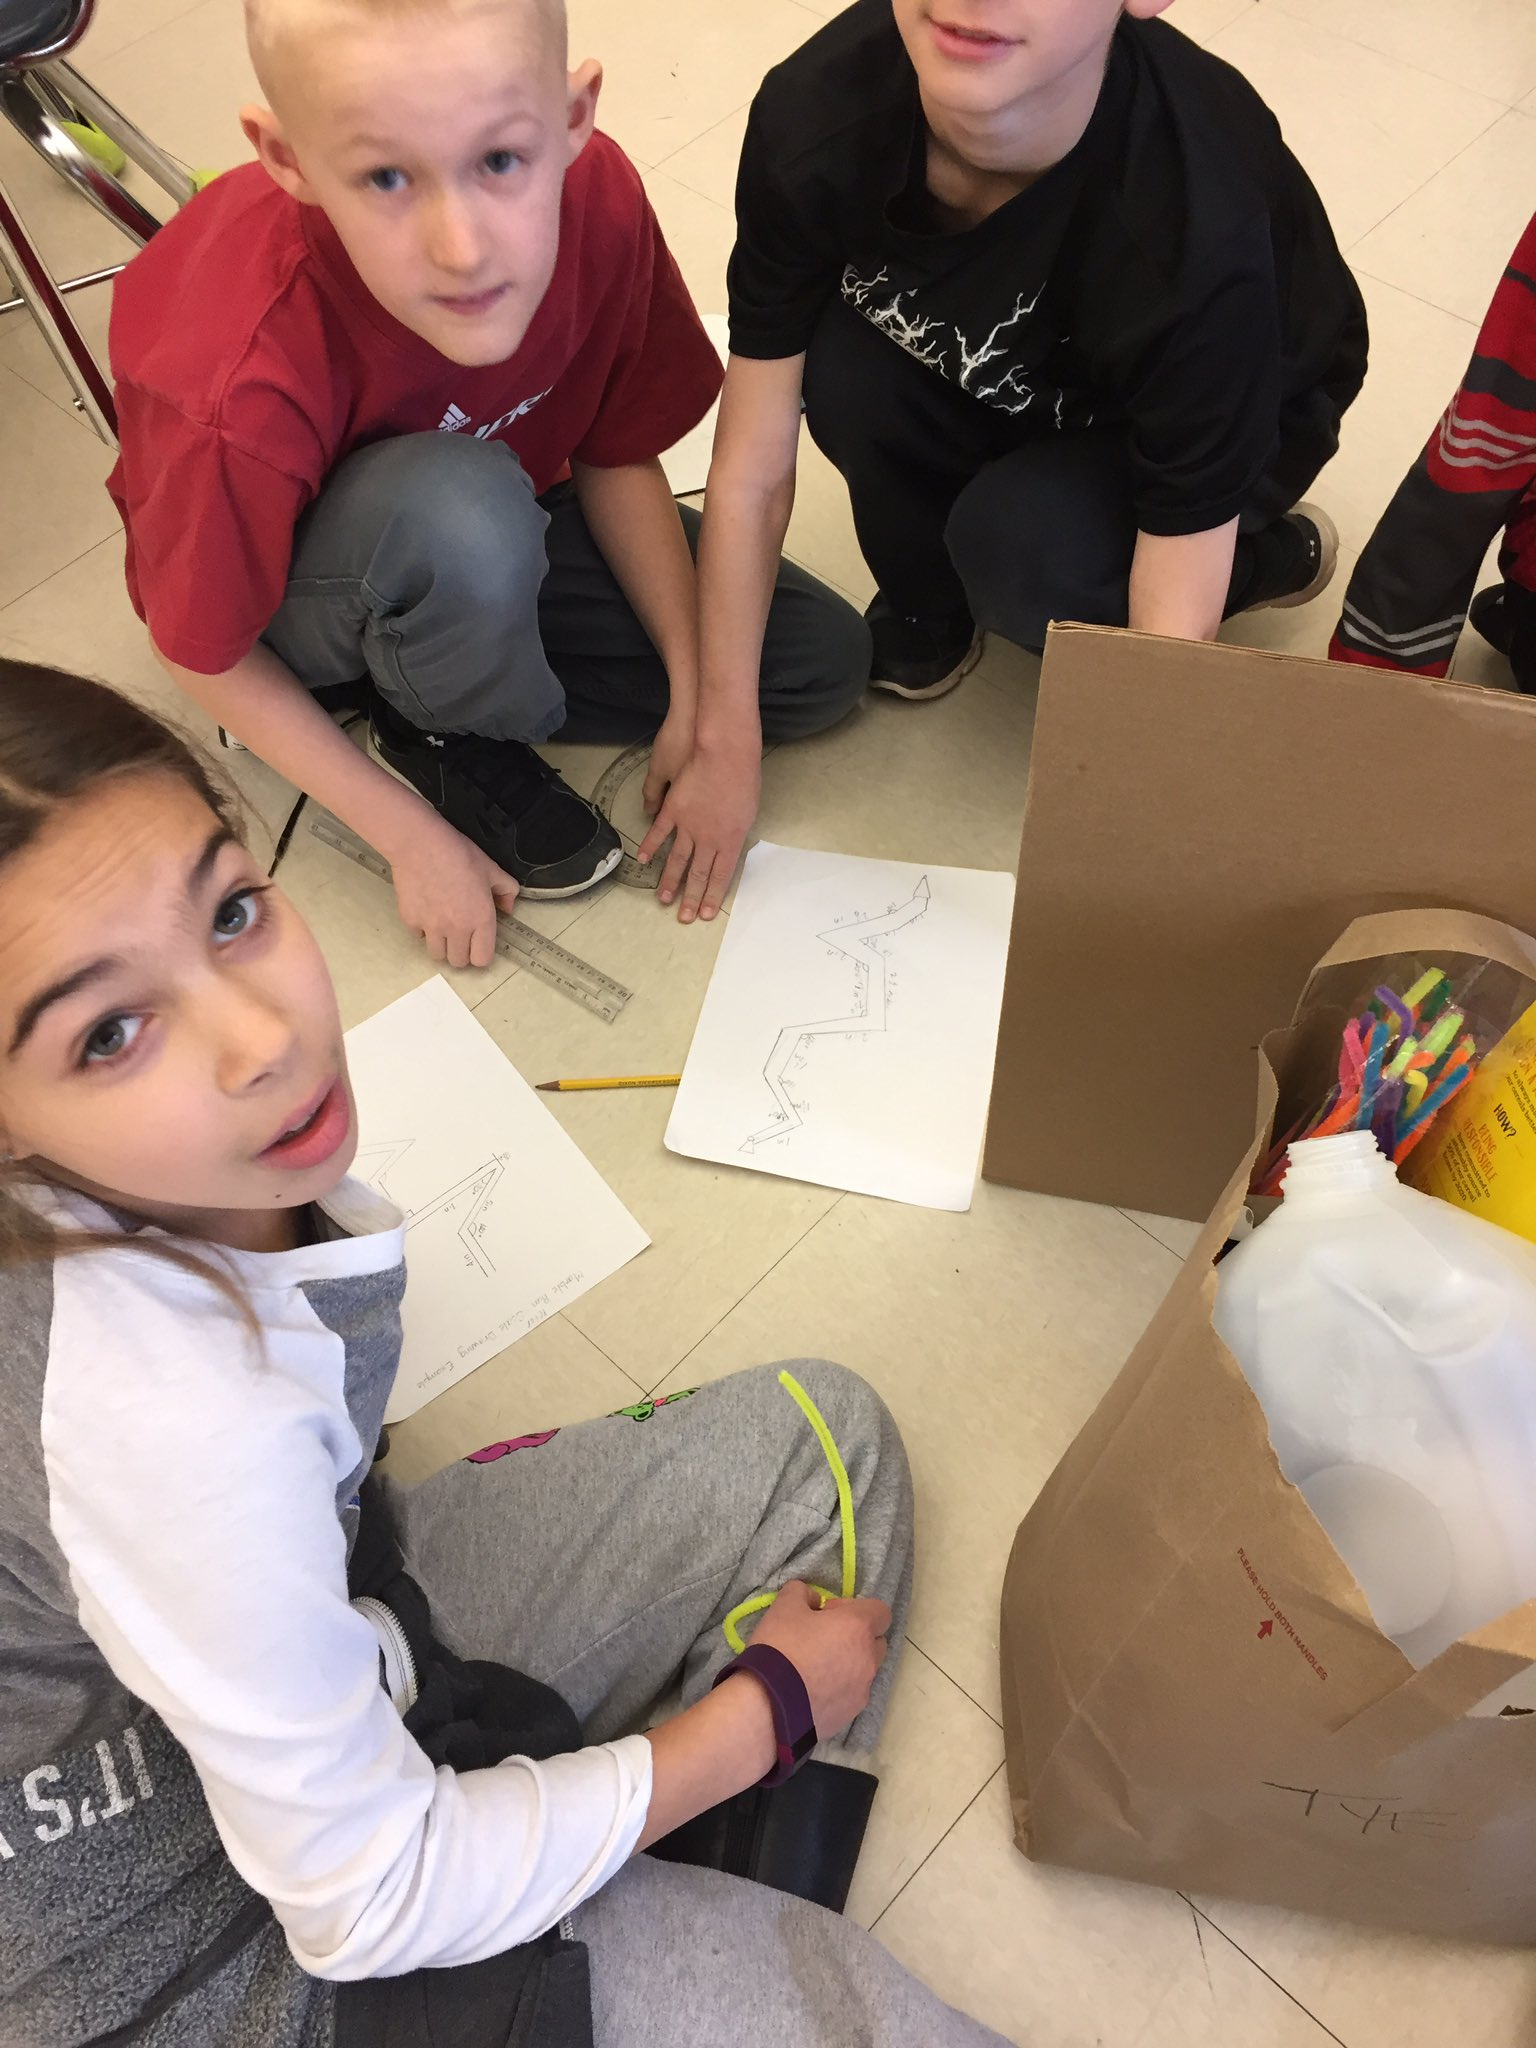 Using protractors to create scales for a marble run #engage109 #sp109 https://t.co/dBNDbddTVD